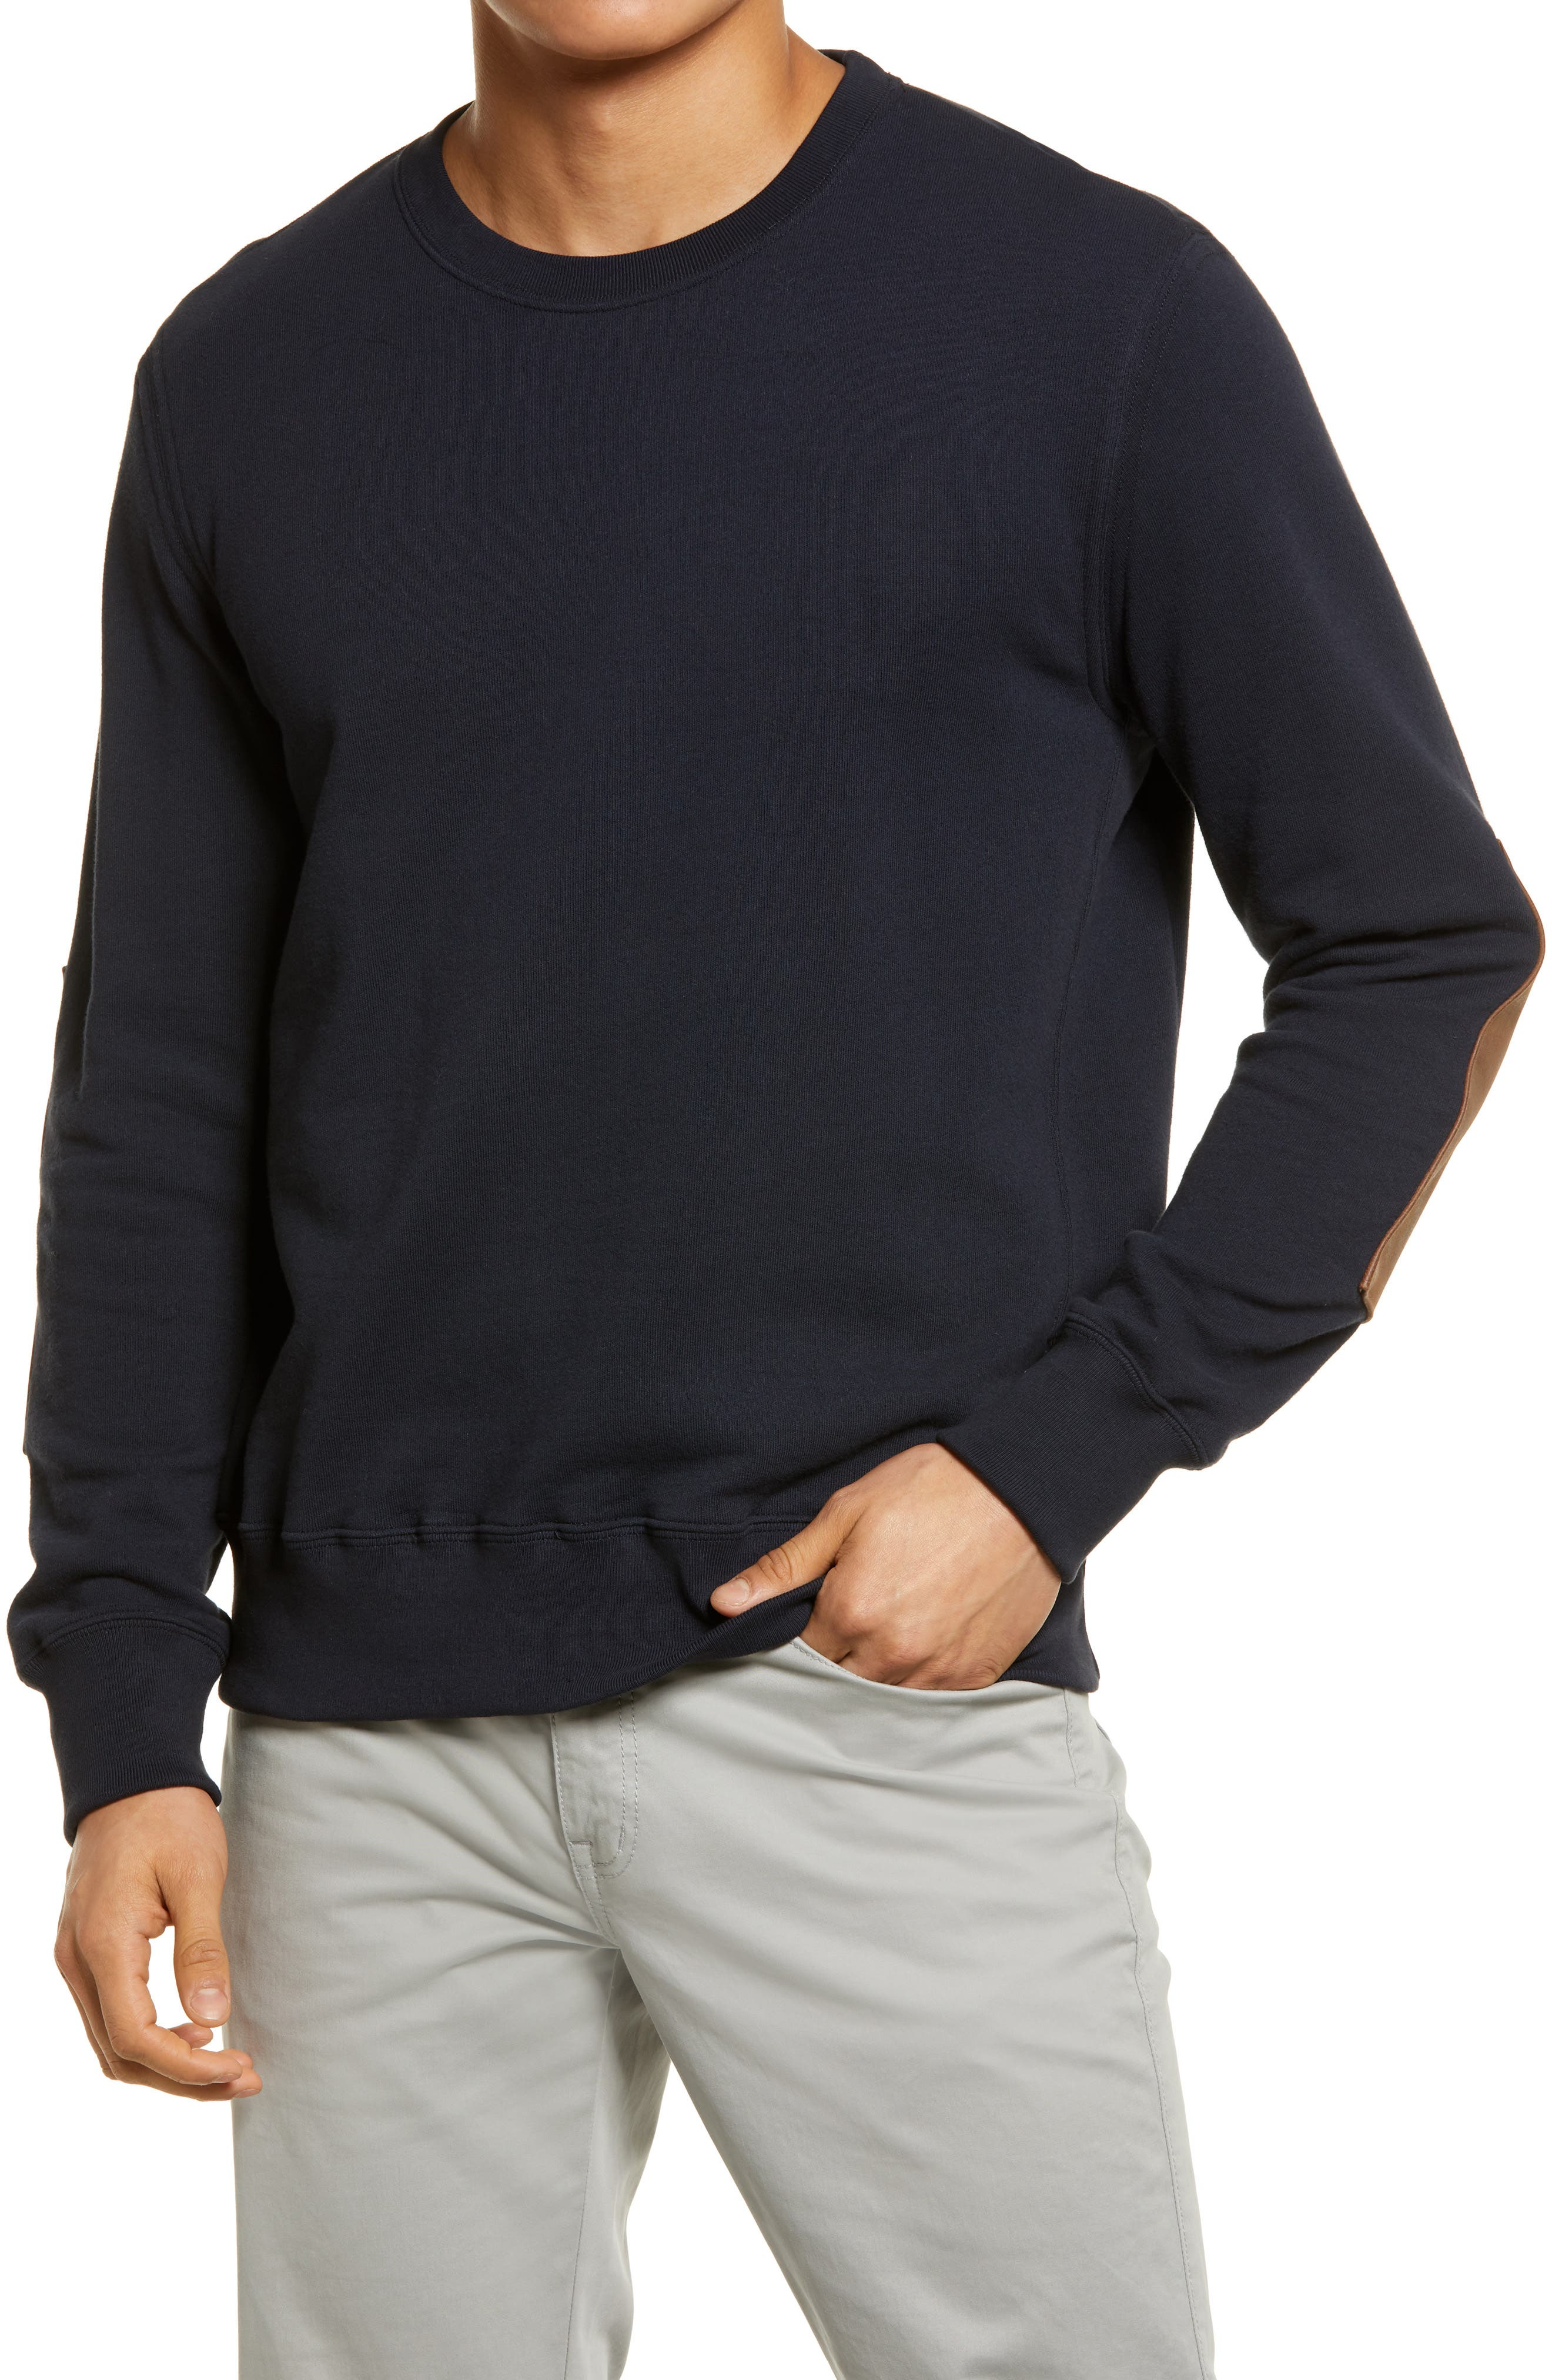 Dover Terry Crewneck Sweater With Leather Elbow Patches